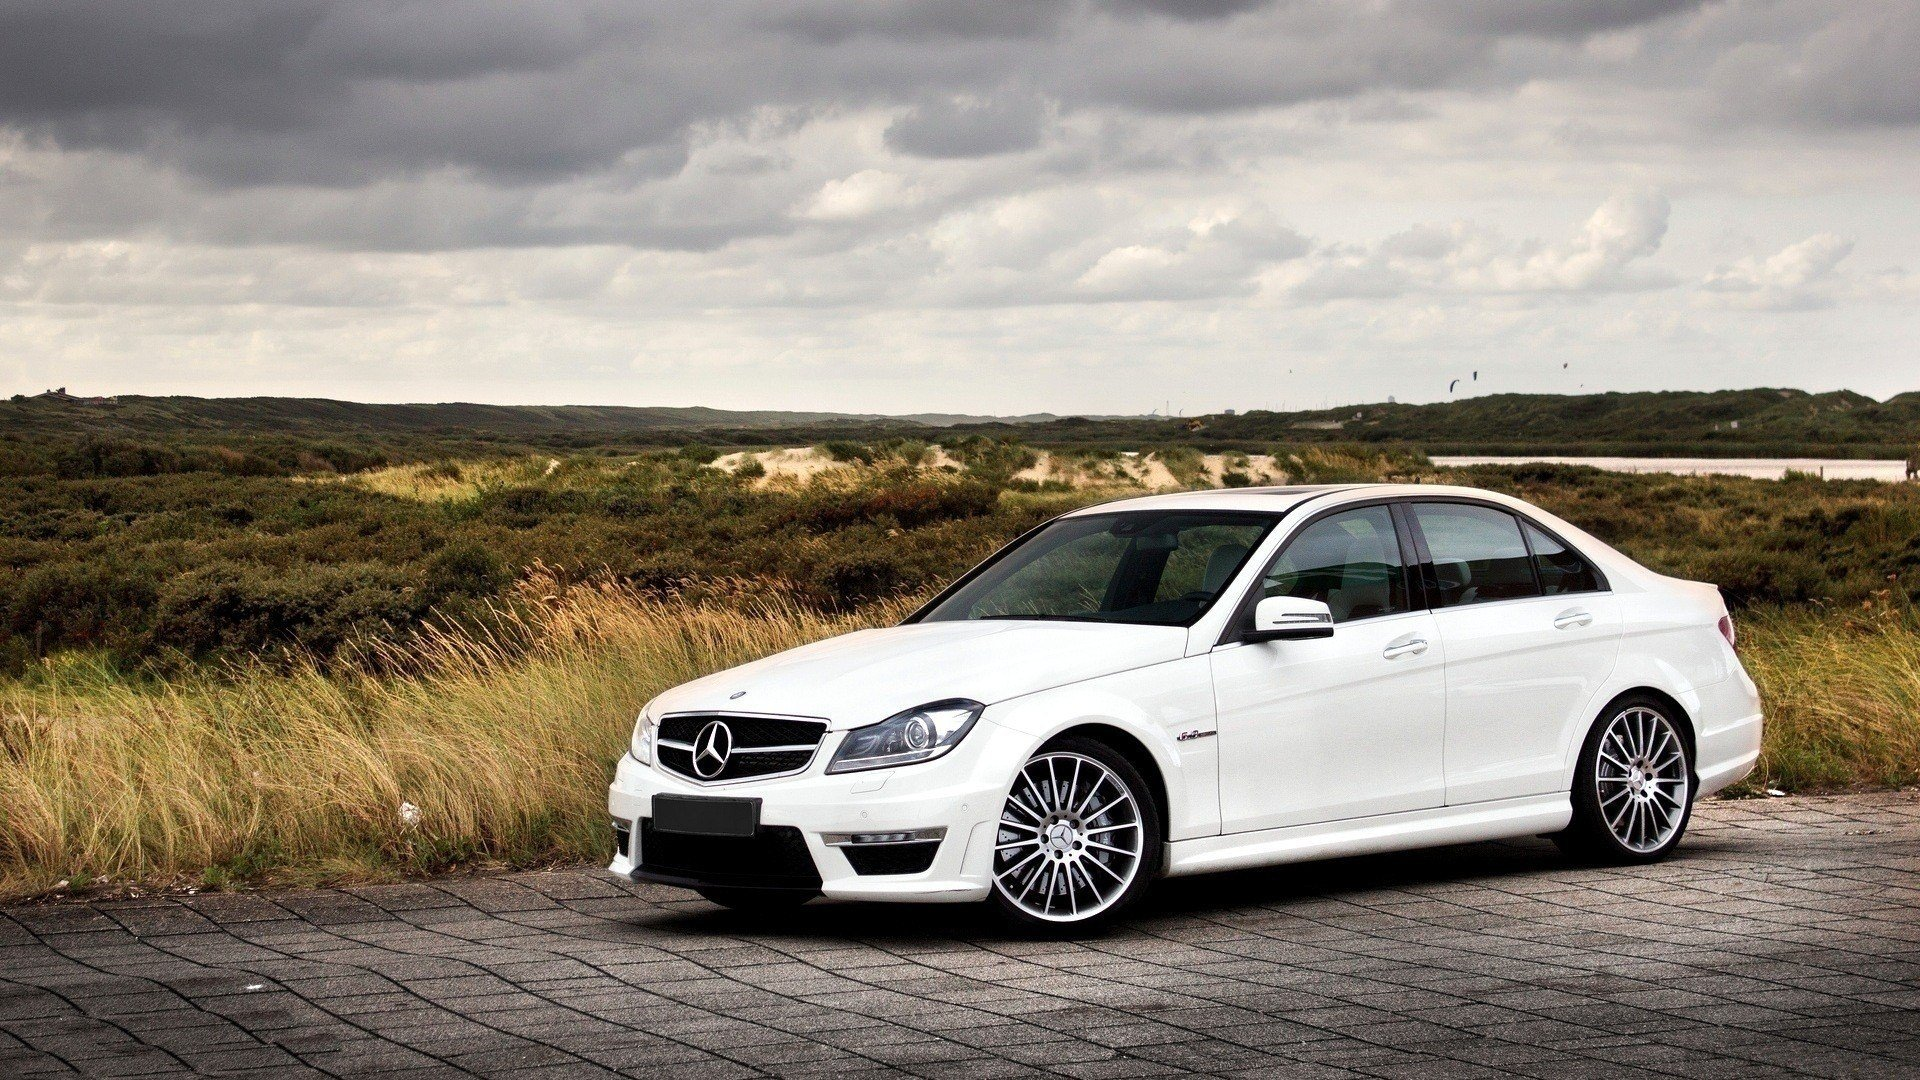 Latest 20 Excellent Hd Mercedes Wallpapers Free Download